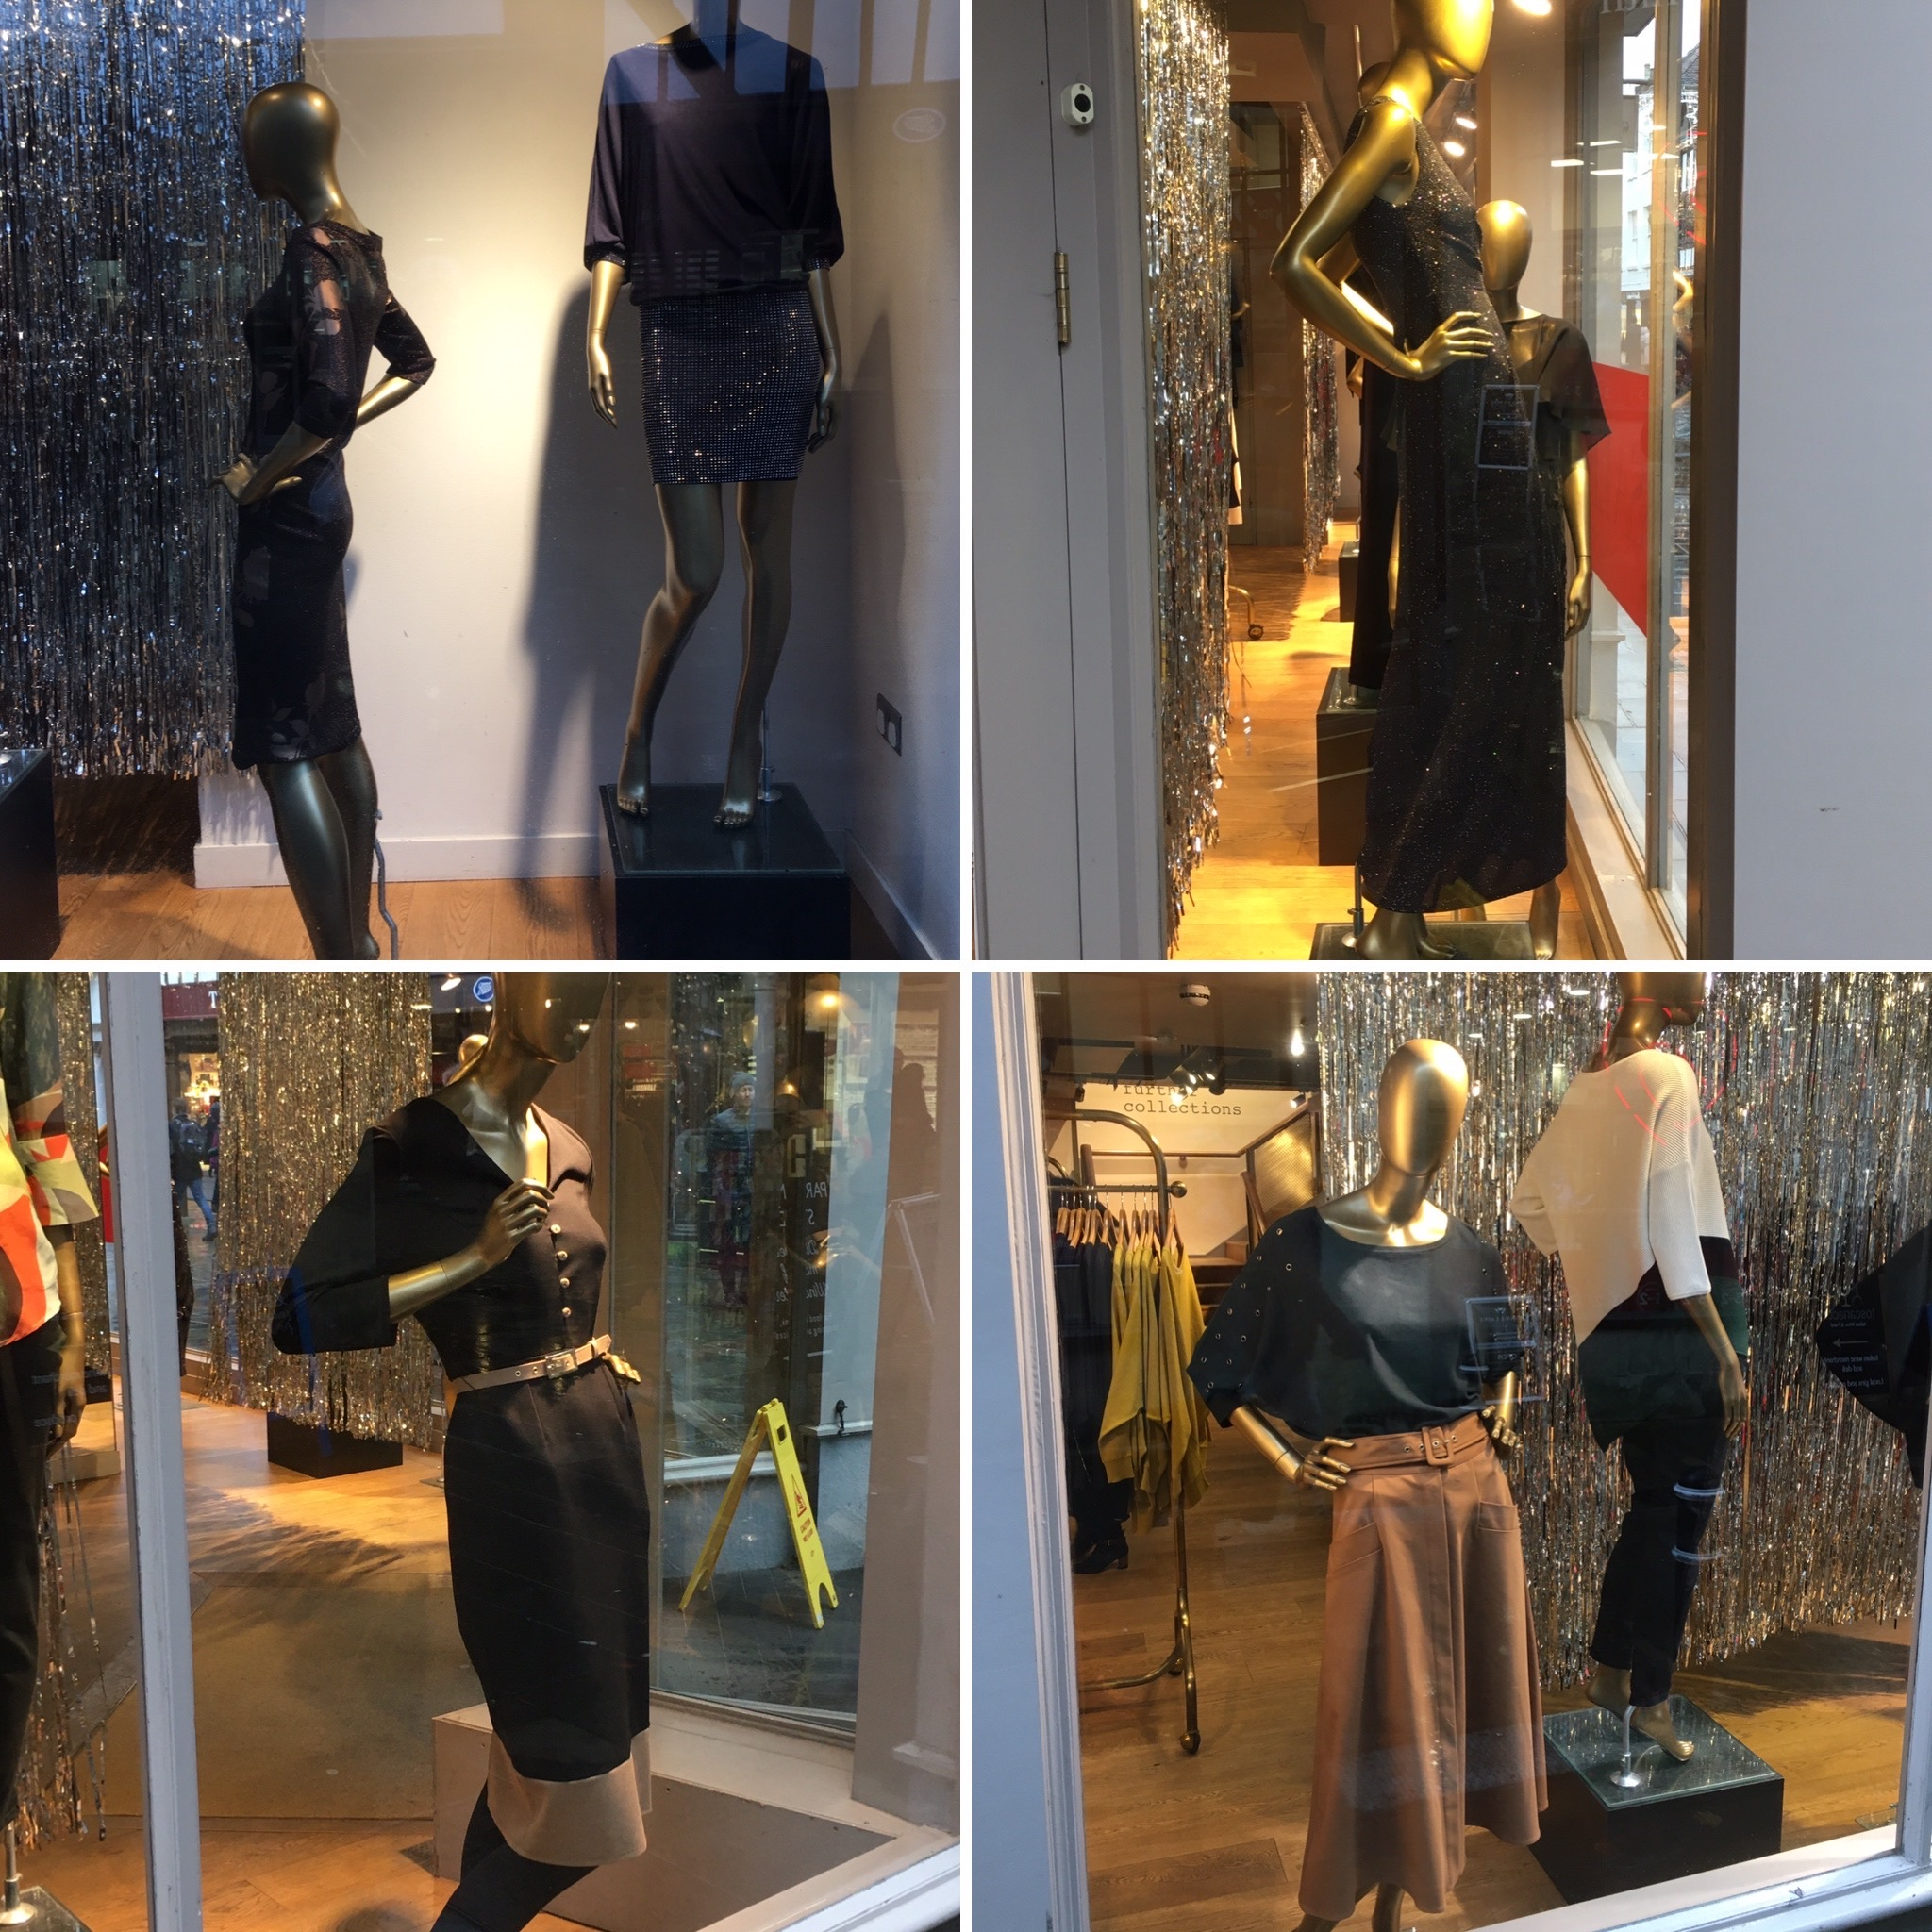 High street Mannequins - is this setting a good example of posture and how we should stand